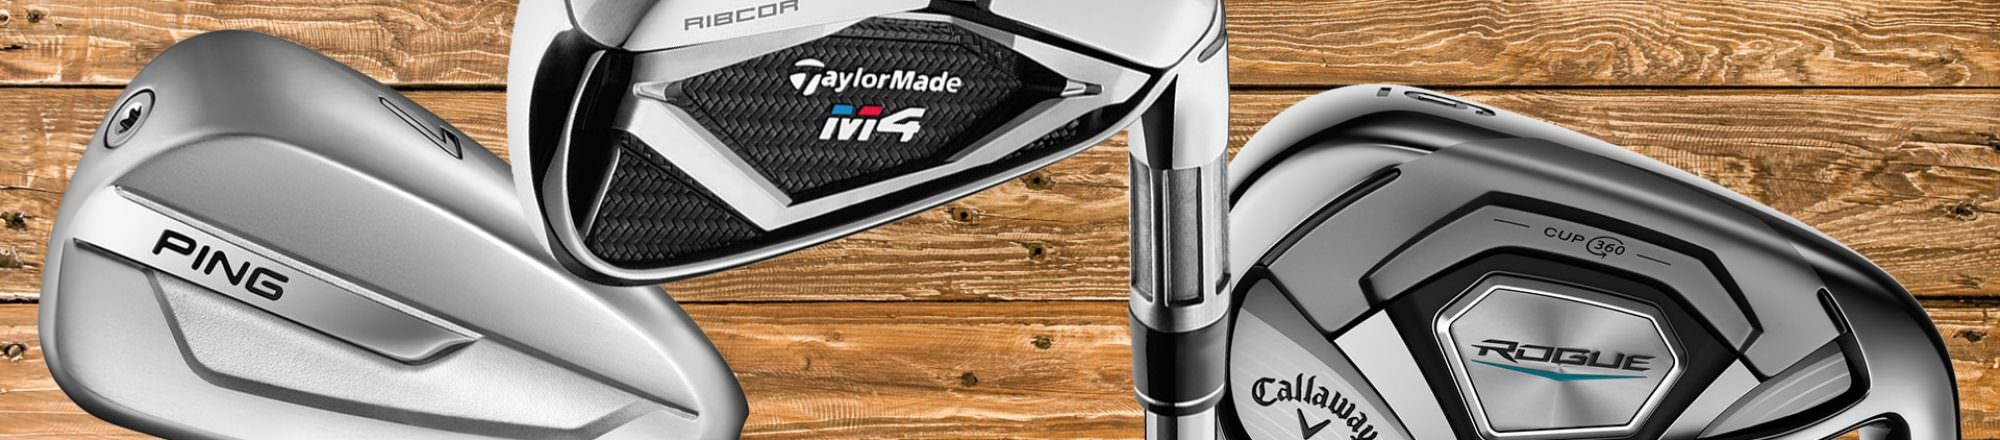 Best irons for high handicappers 2018